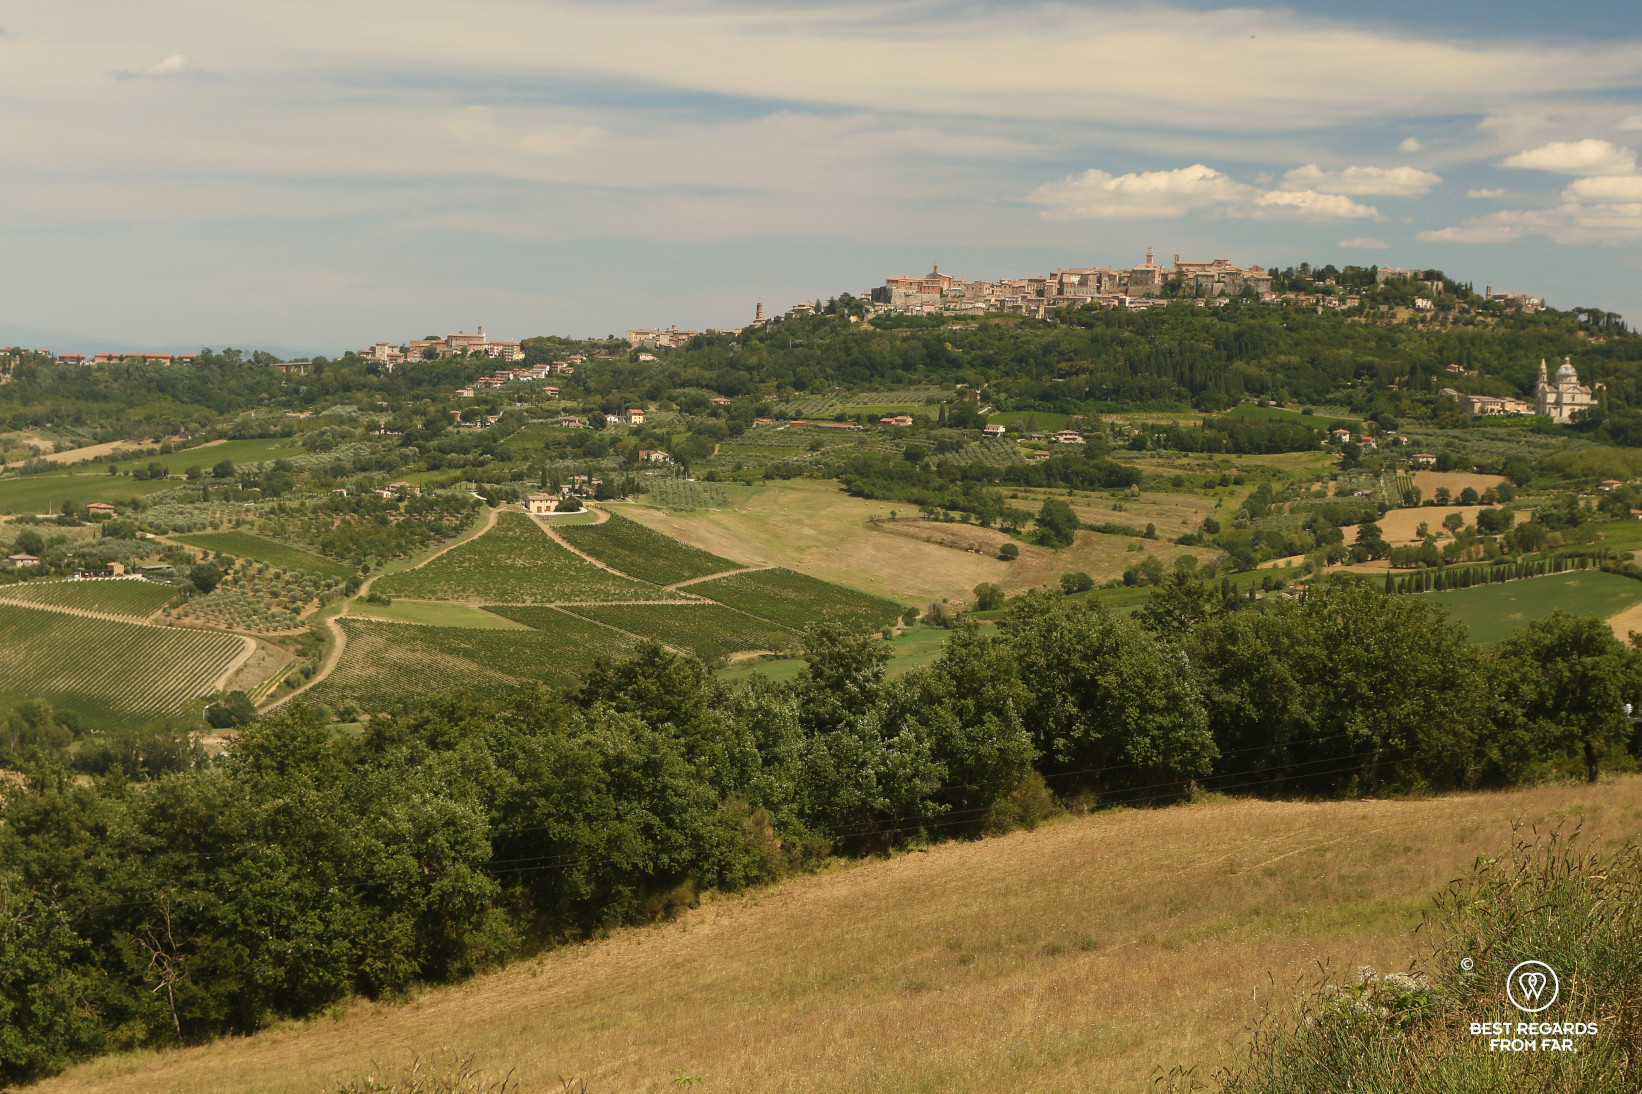 Medieval town of Montepulciano on a hill top with vineyards and blue skies